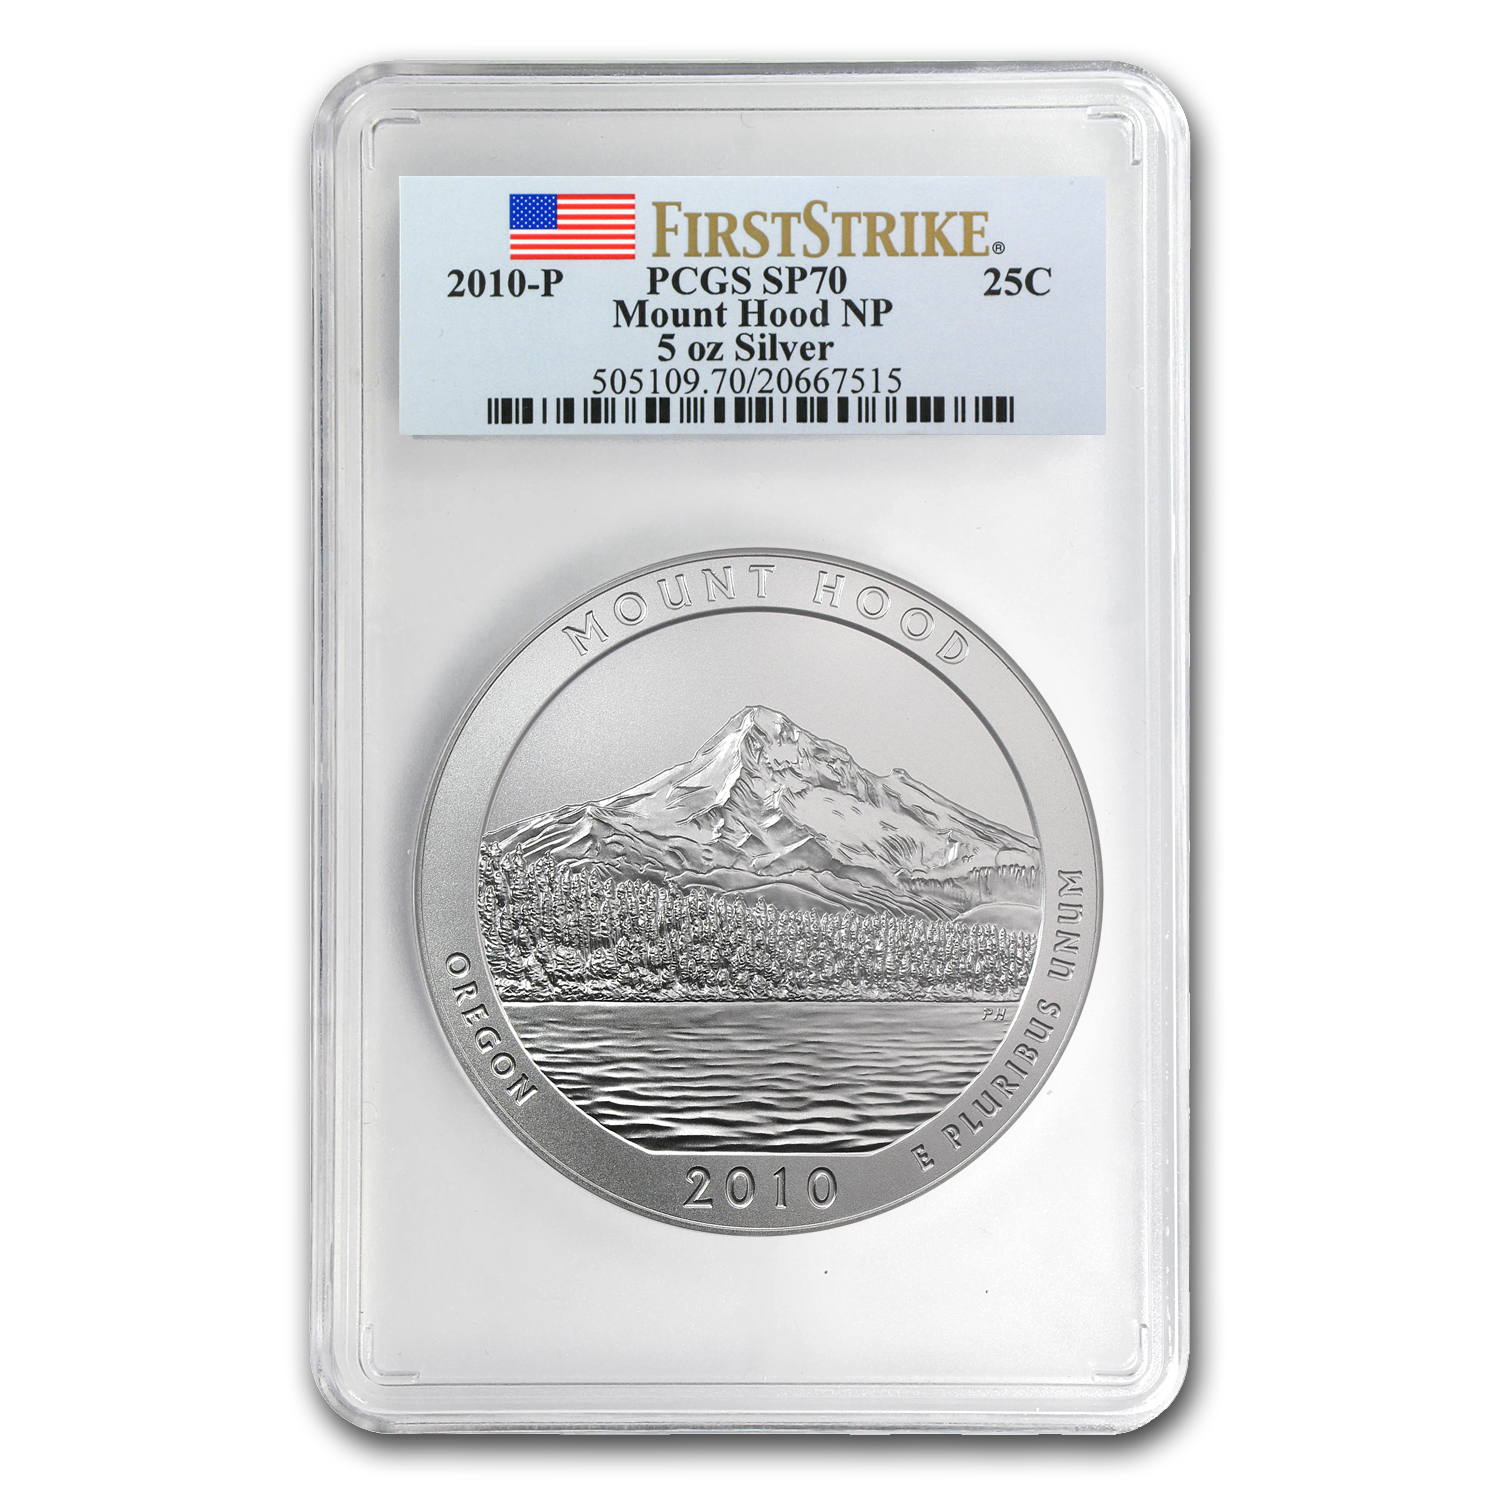 2010-P 5 oz Silver ATB Mount Hood PCGS SP-70 PCGS First Strike